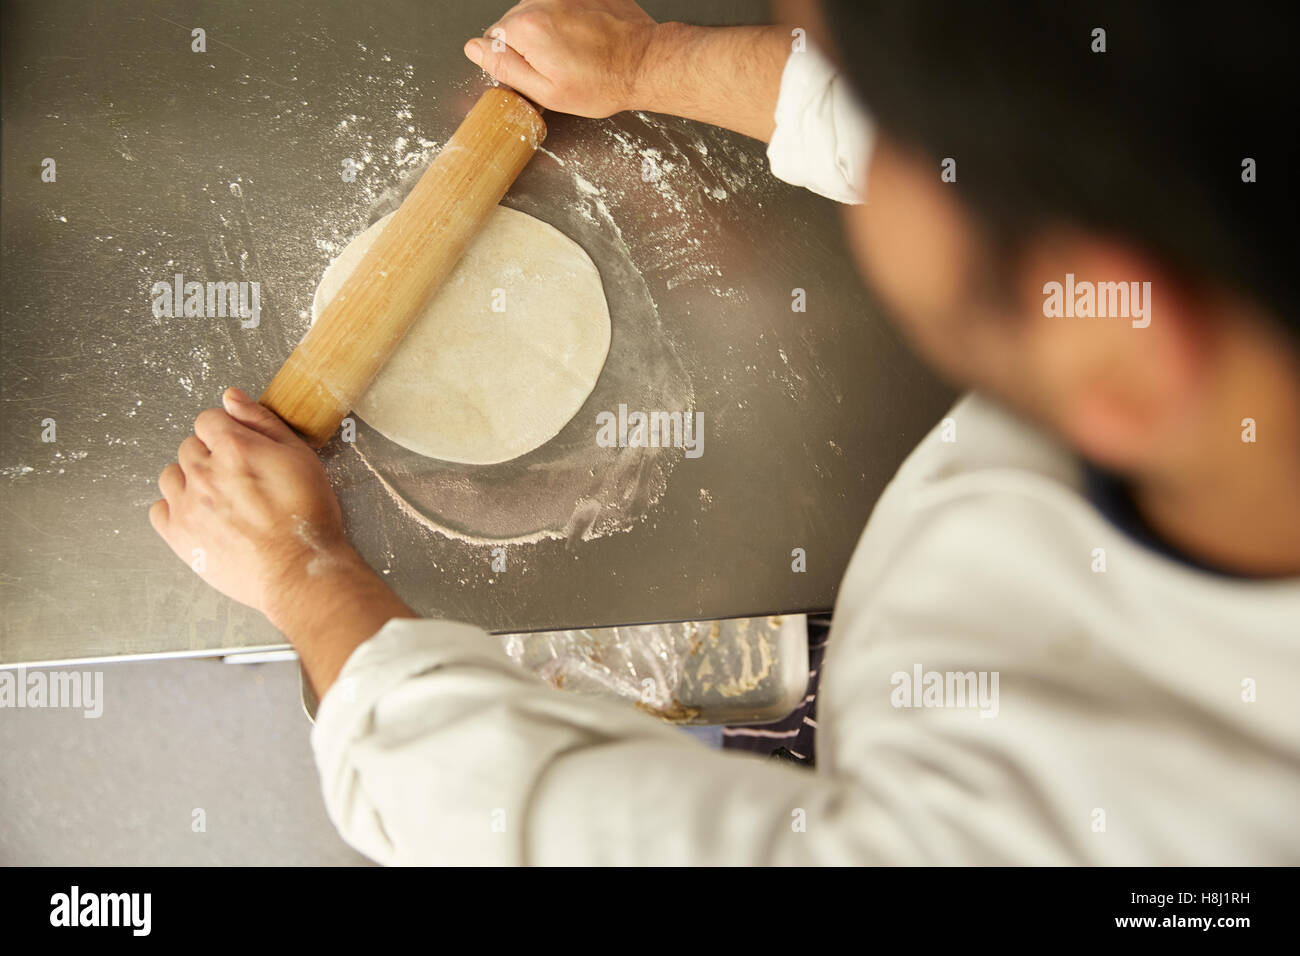 INDIAN RESTAURANT FOOD PREPARATION NAN BREAD OVEN Stock Photo